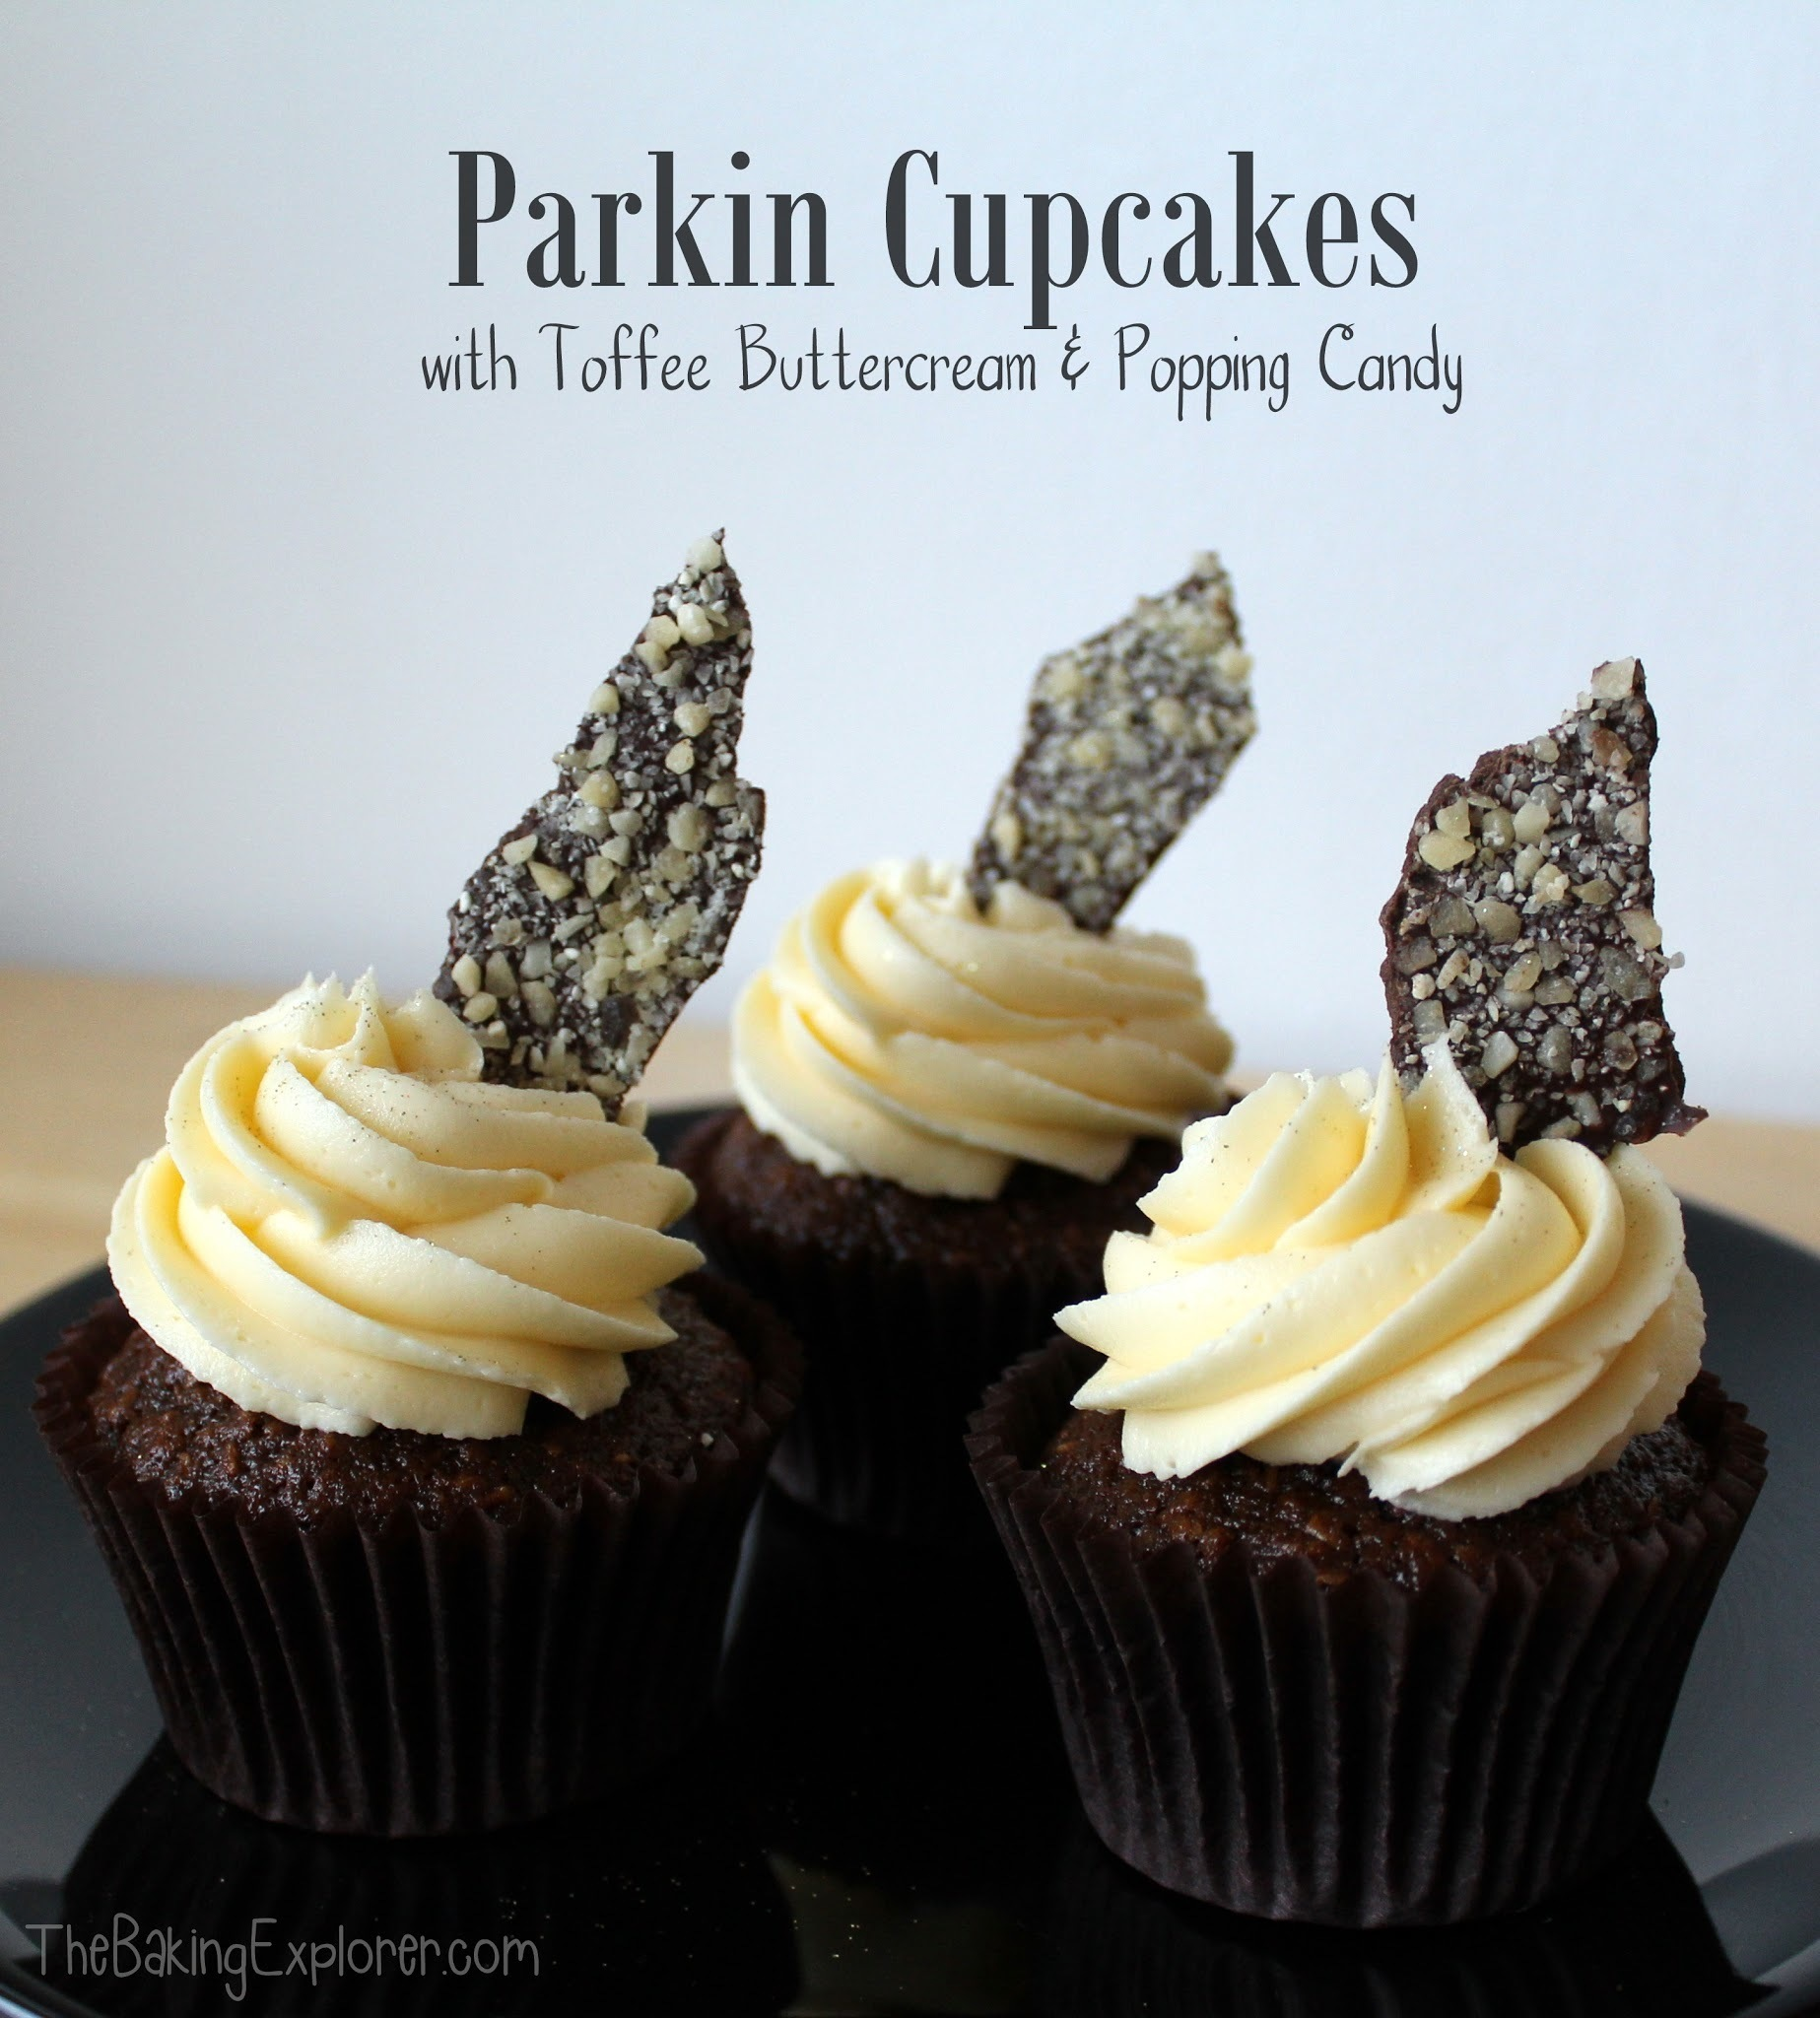 Parkin Cupcakes with Toffee Buttercream & Popping Candy